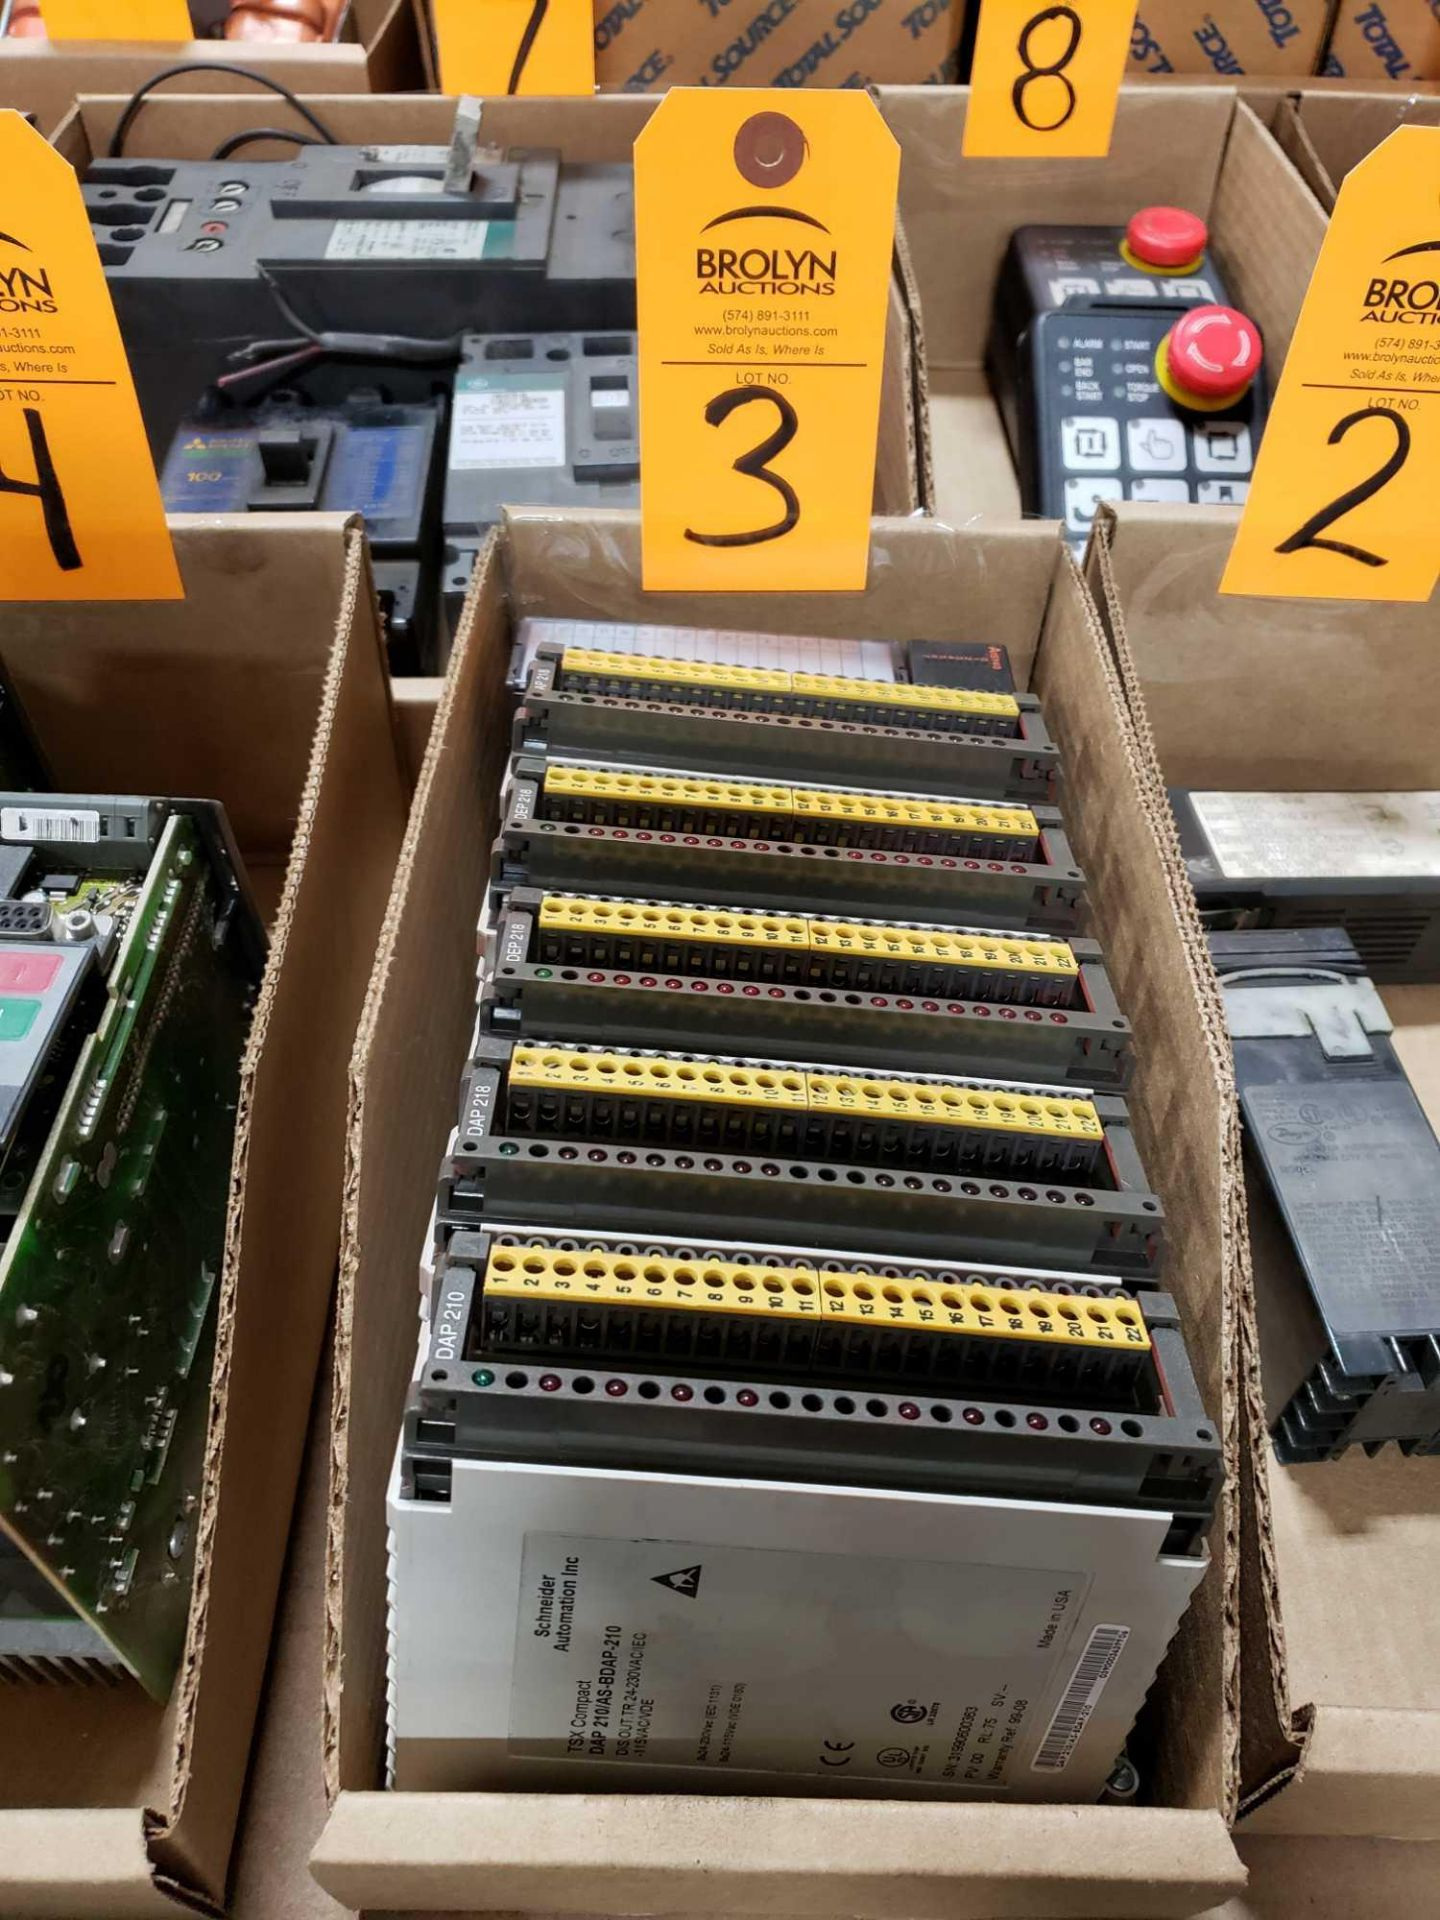 Lot 3 - Qty 3 - Assorted Schneider Modicon modules as pictured.